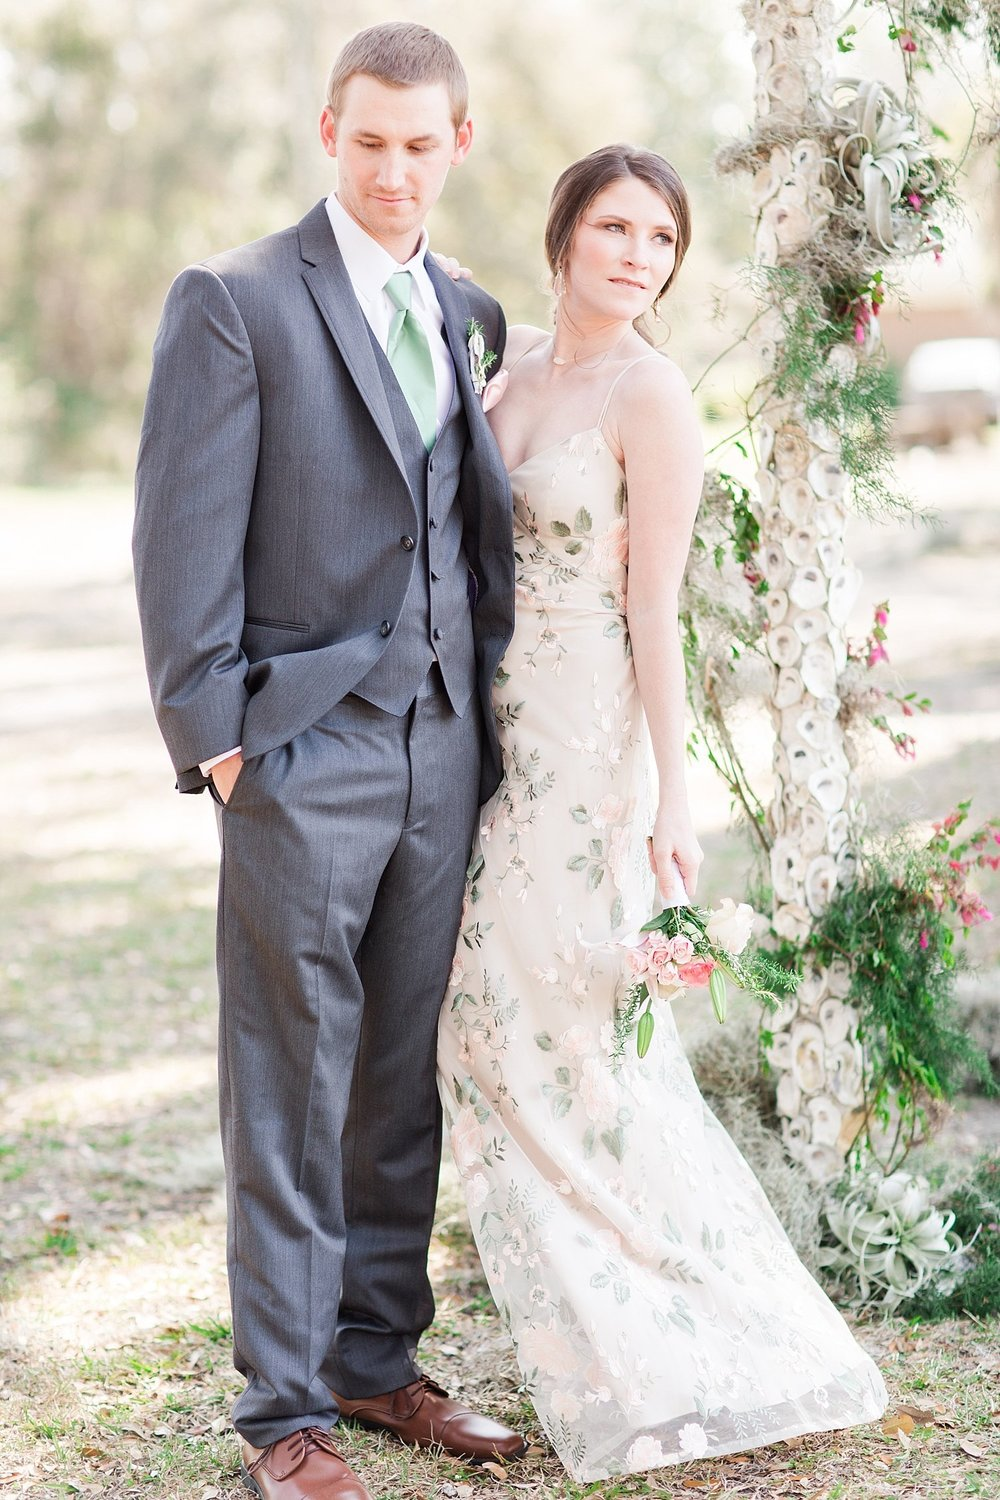 rachel-strickland-photography-katie-may-ivory-and-beau-bridal-boutique-bethesda-academy-wedding-whitfield-chapel-wedding-savannah-bridal-boutique-savannah-weddings-savannah-wedding-savannah-wedding-planner-savannah-bridal-gowns-savannah-bride-15.jpg